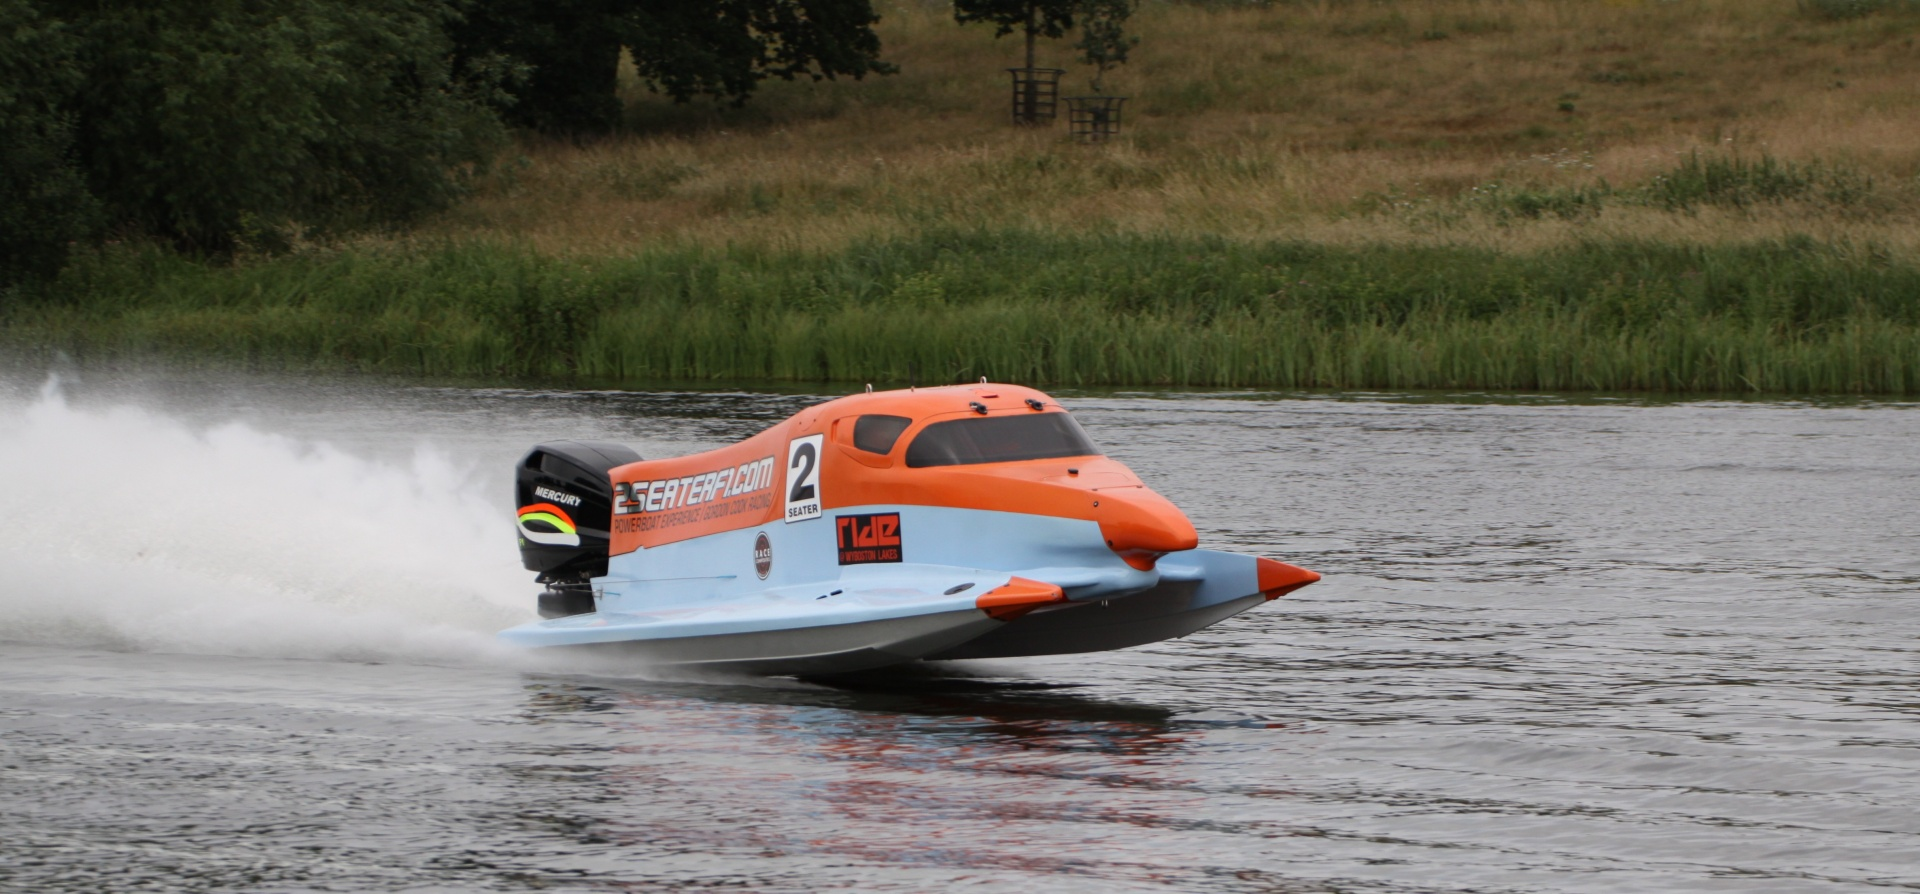 Two Seater F1 Powerboat Experience in Bedfordshire